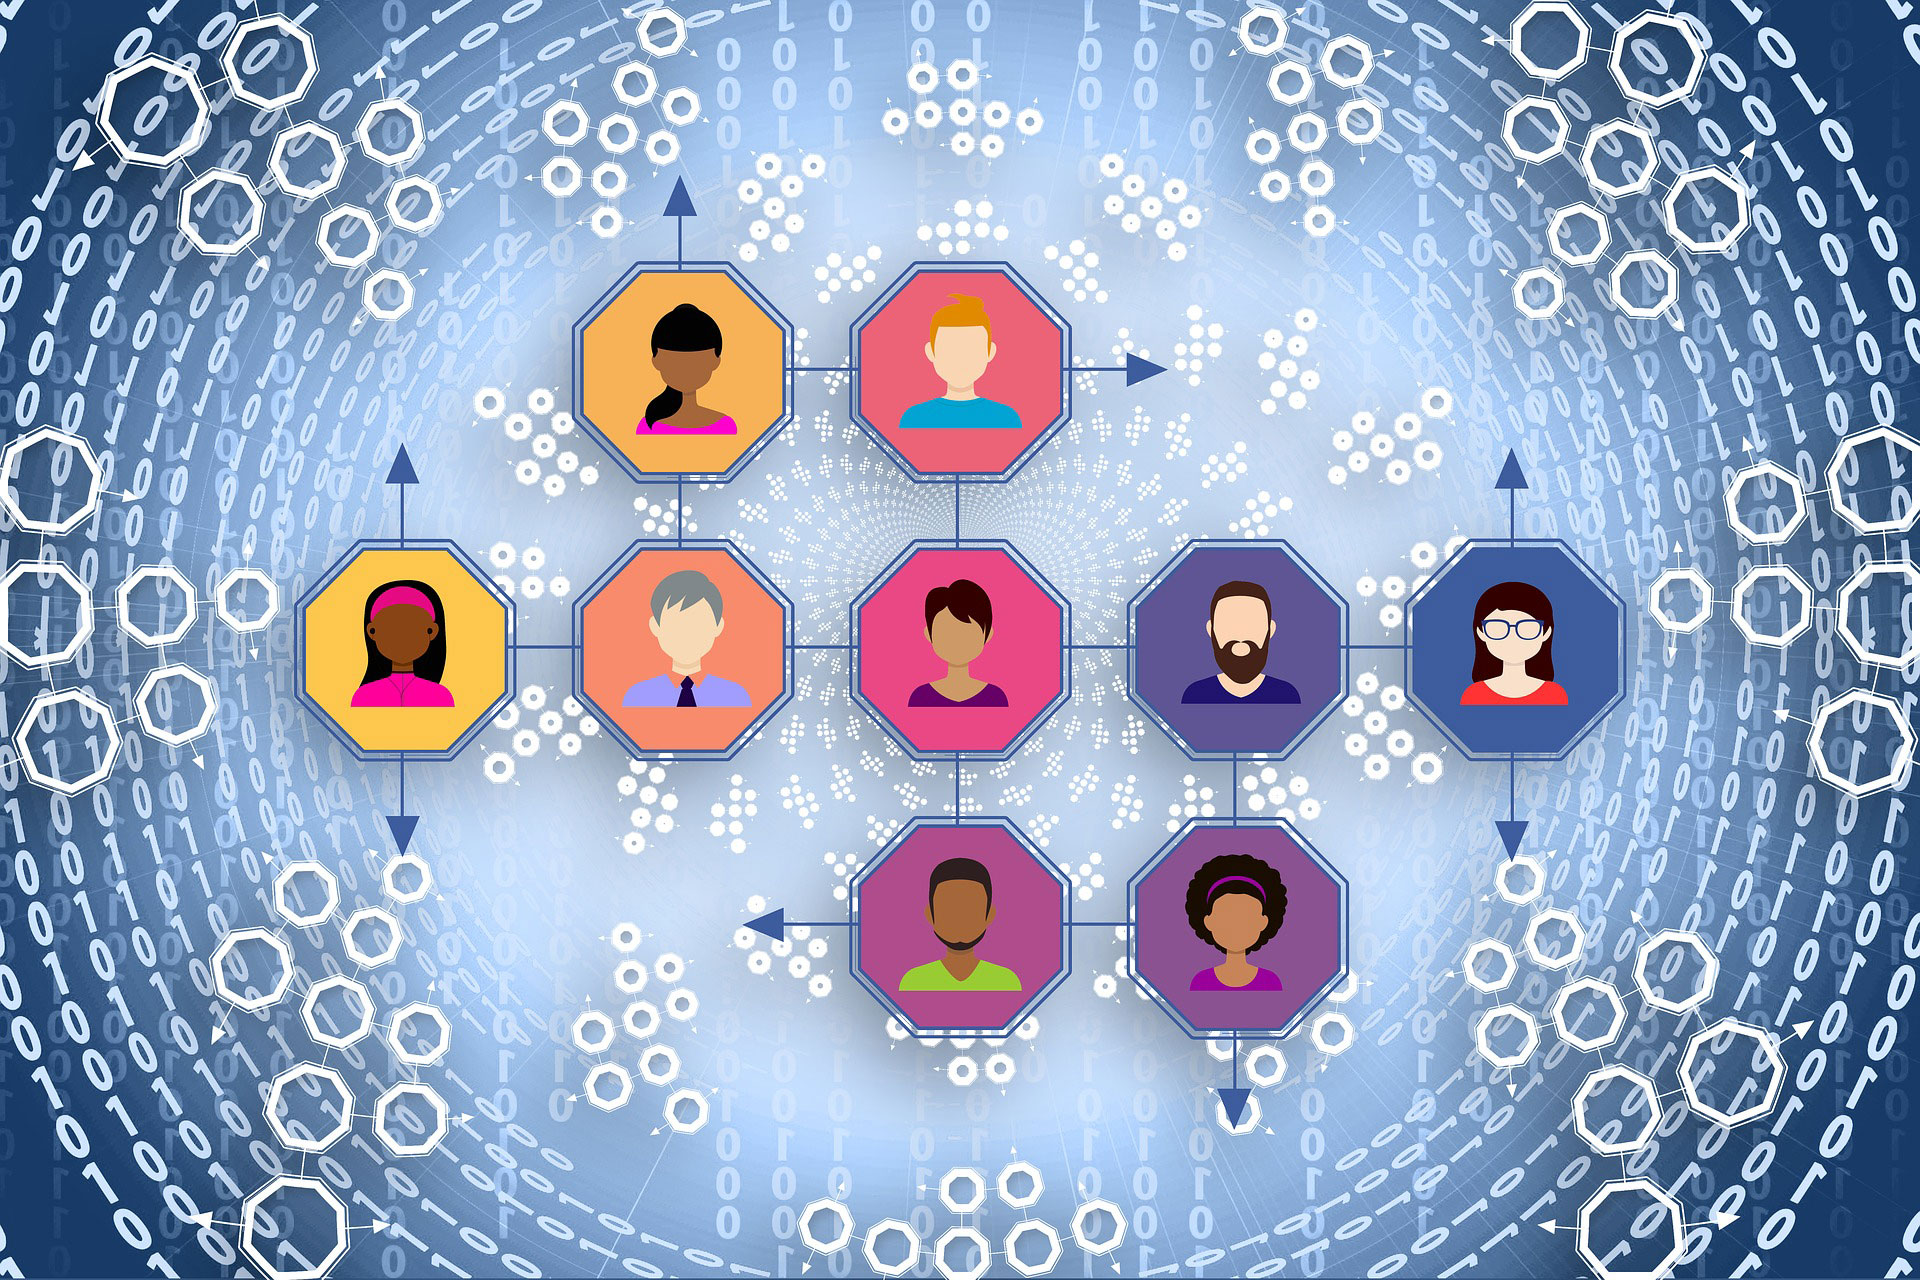 Social Media Marketing, using personas